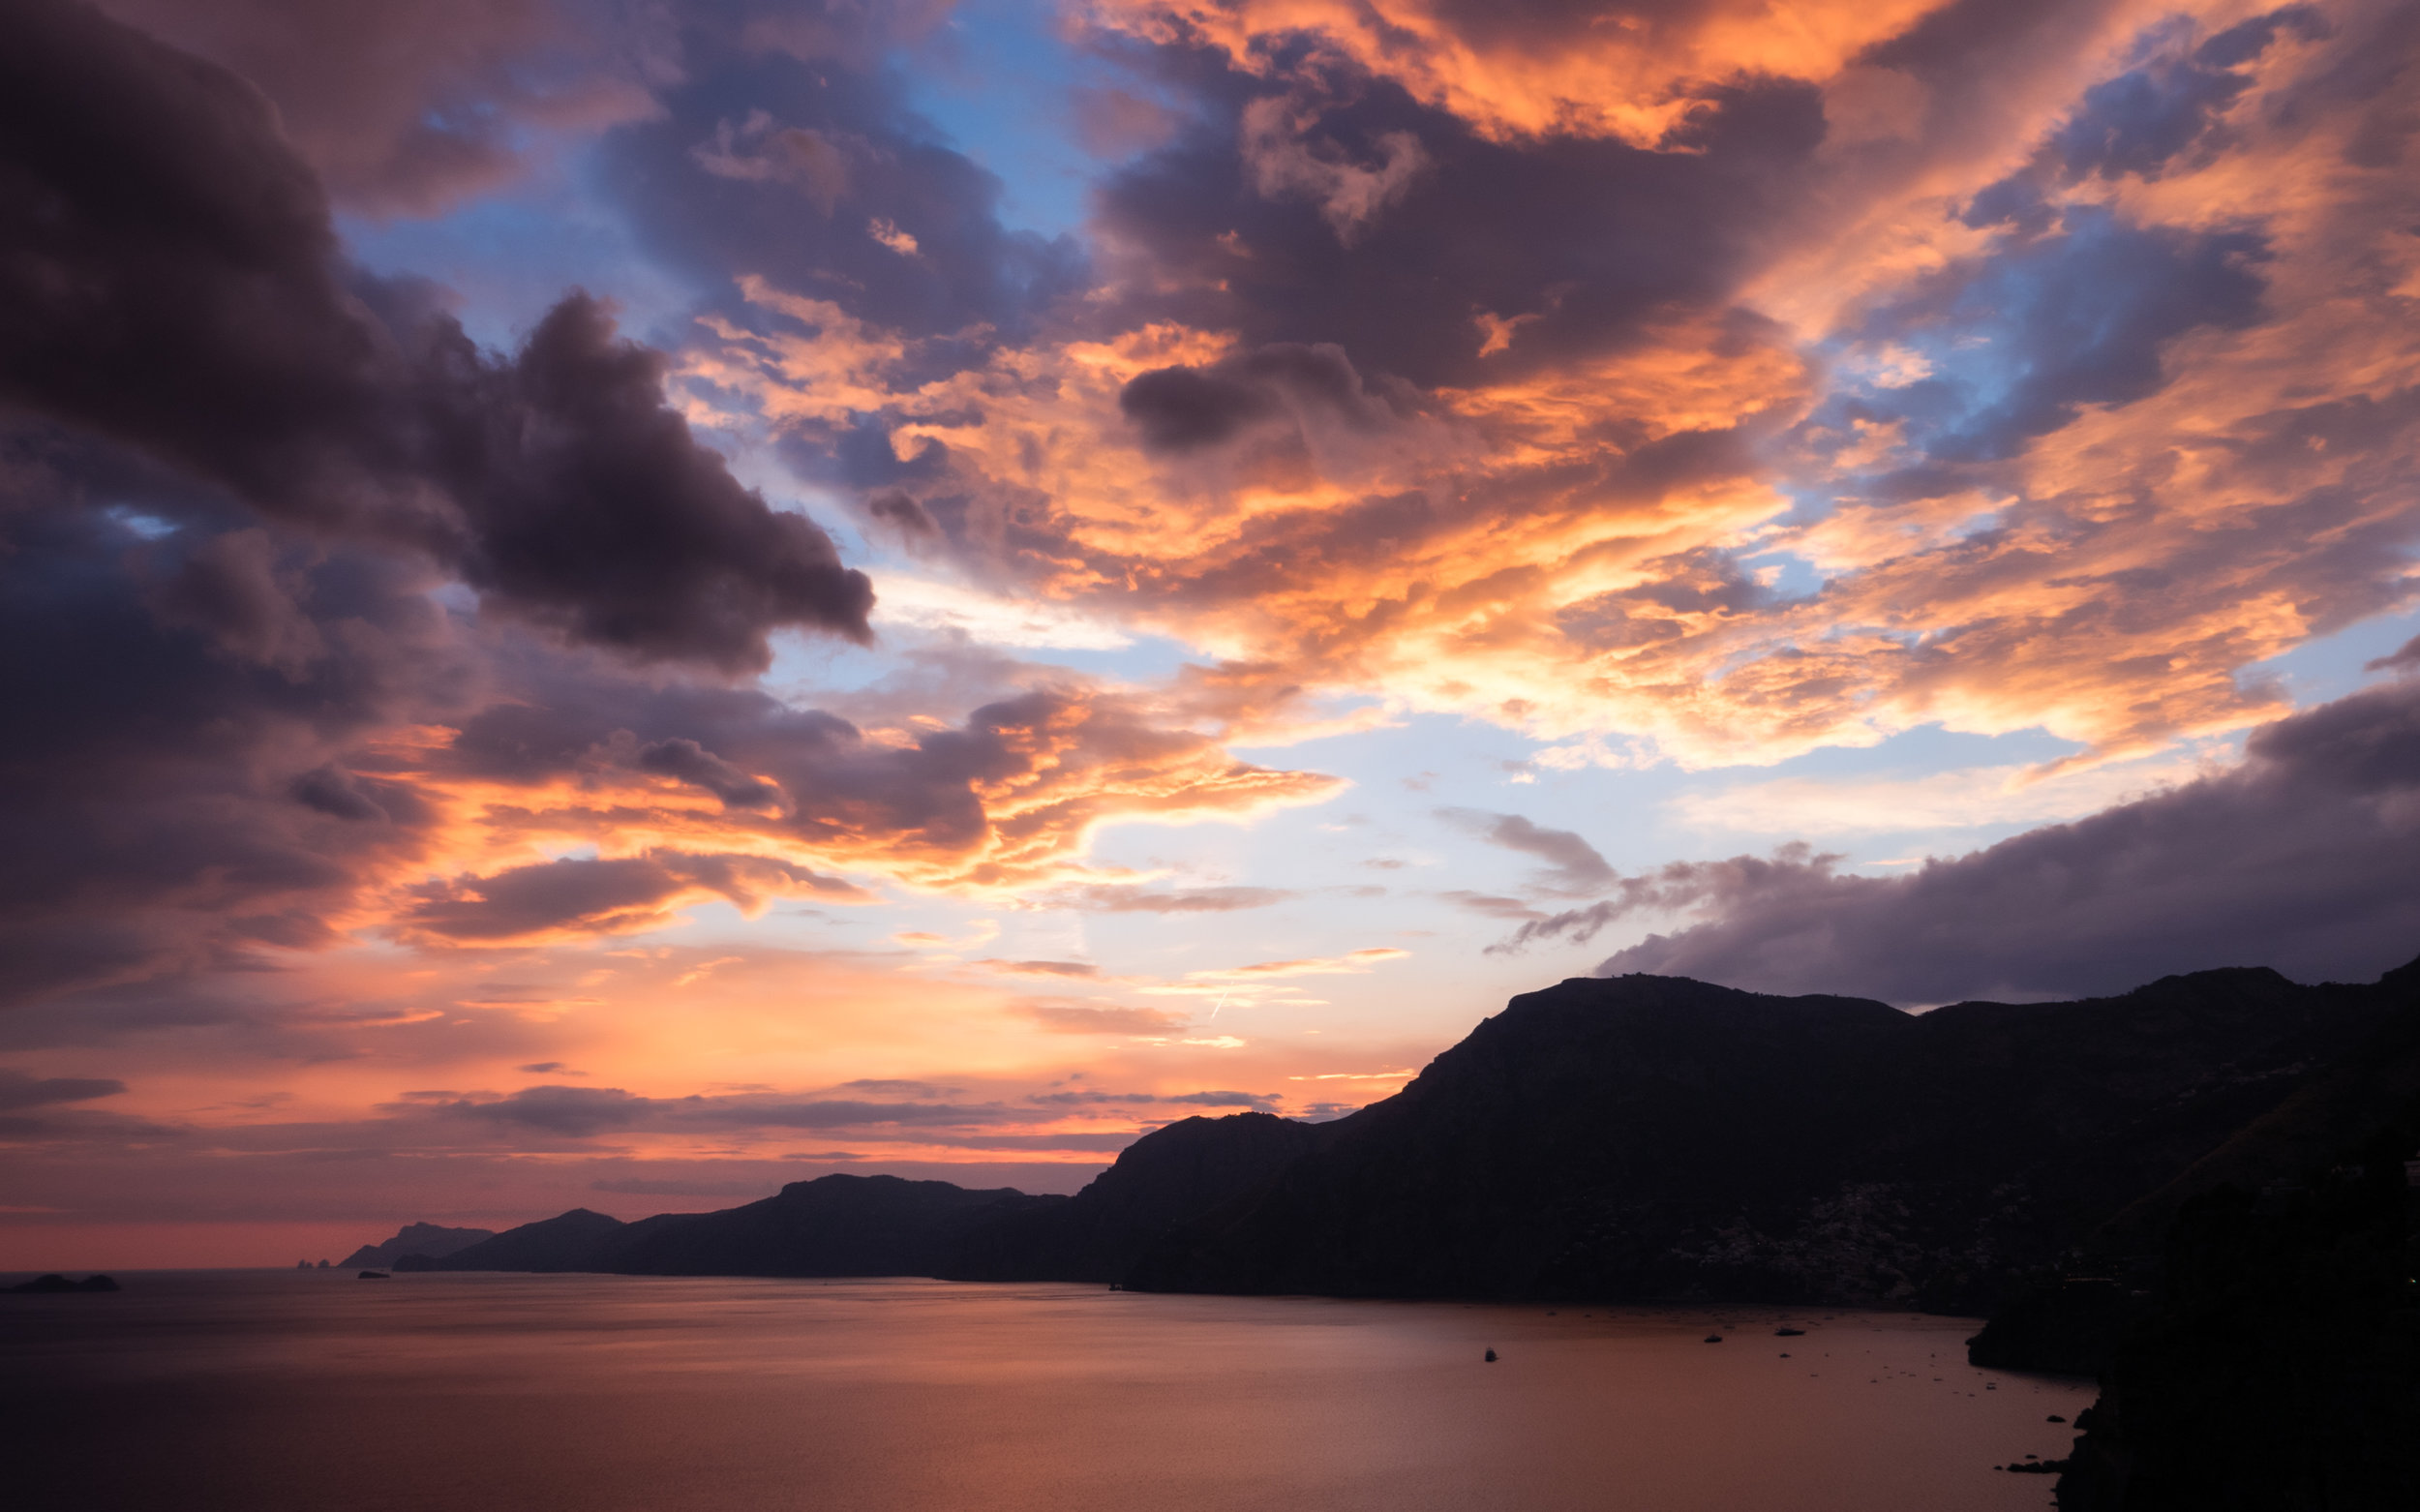 Italy-Praiano-sunset-golden-clouds.jpg